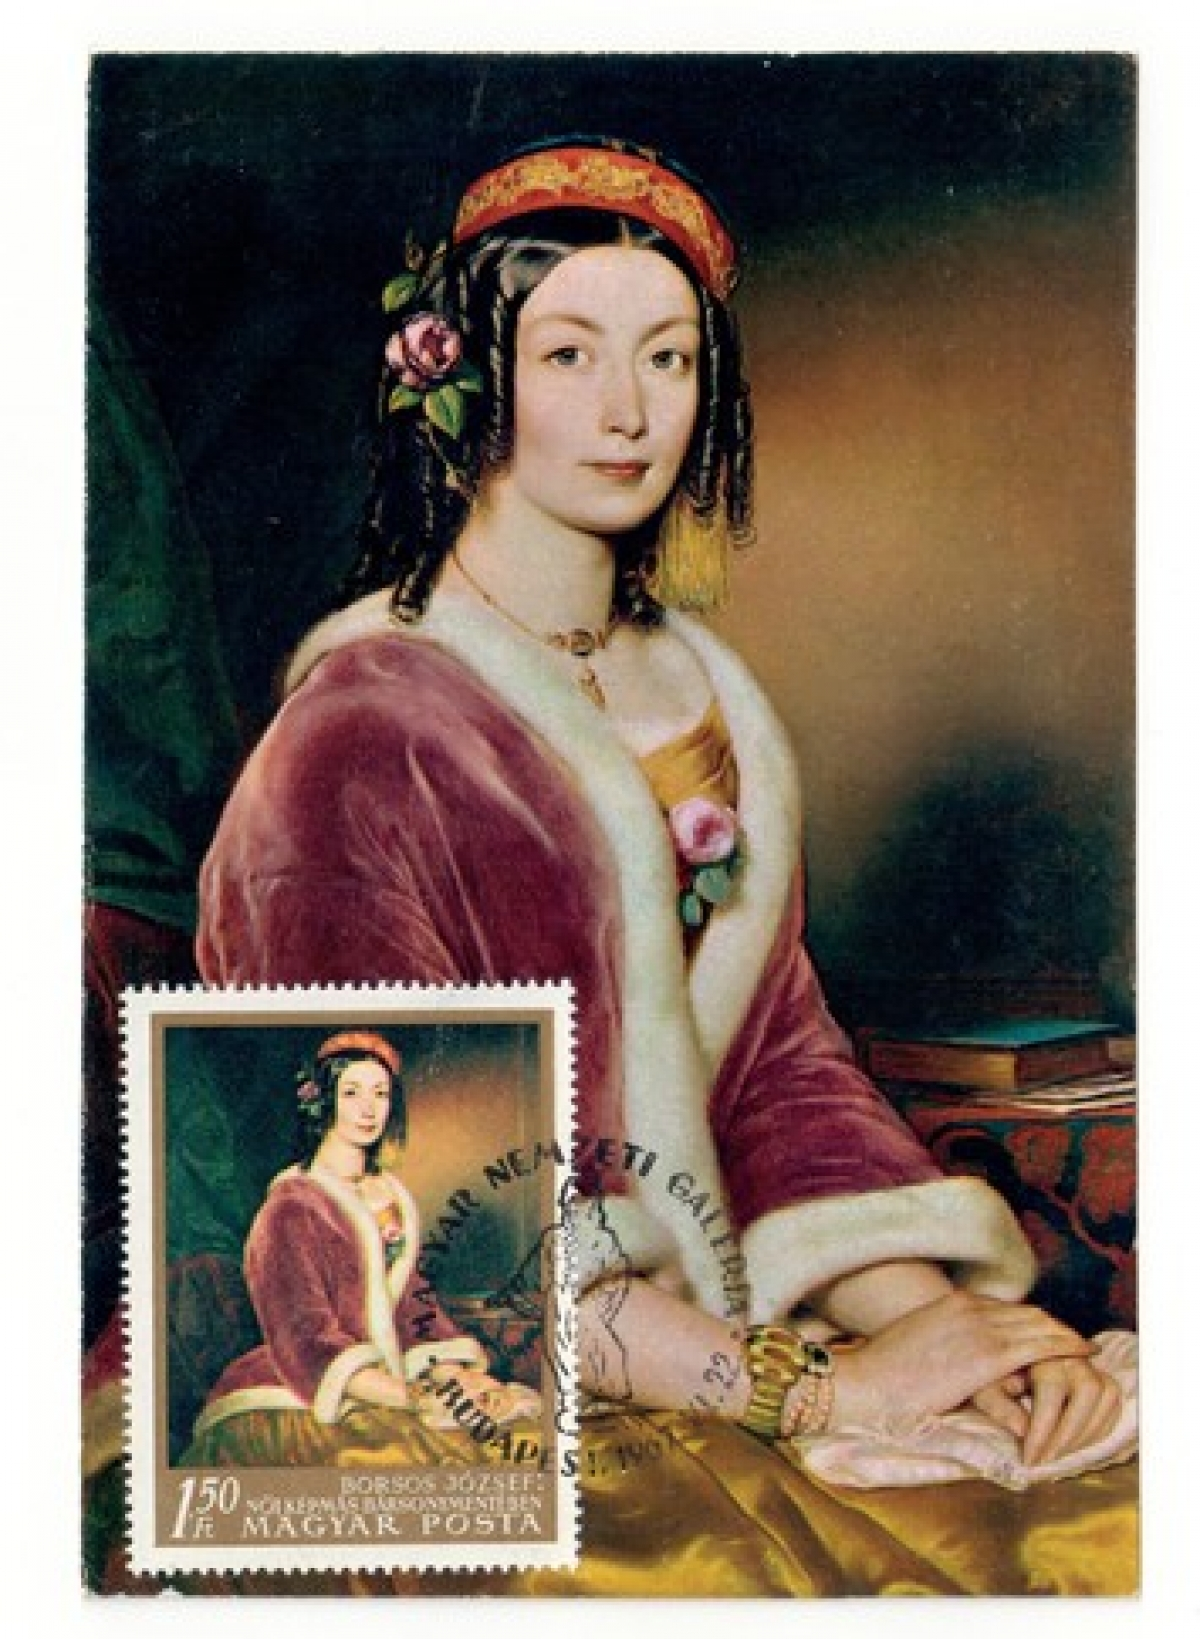 Postcard with a nineteenth century painting of a woman wearing a velvet jacket, with a stamp depicting the same painting (TRC 2018.2544).